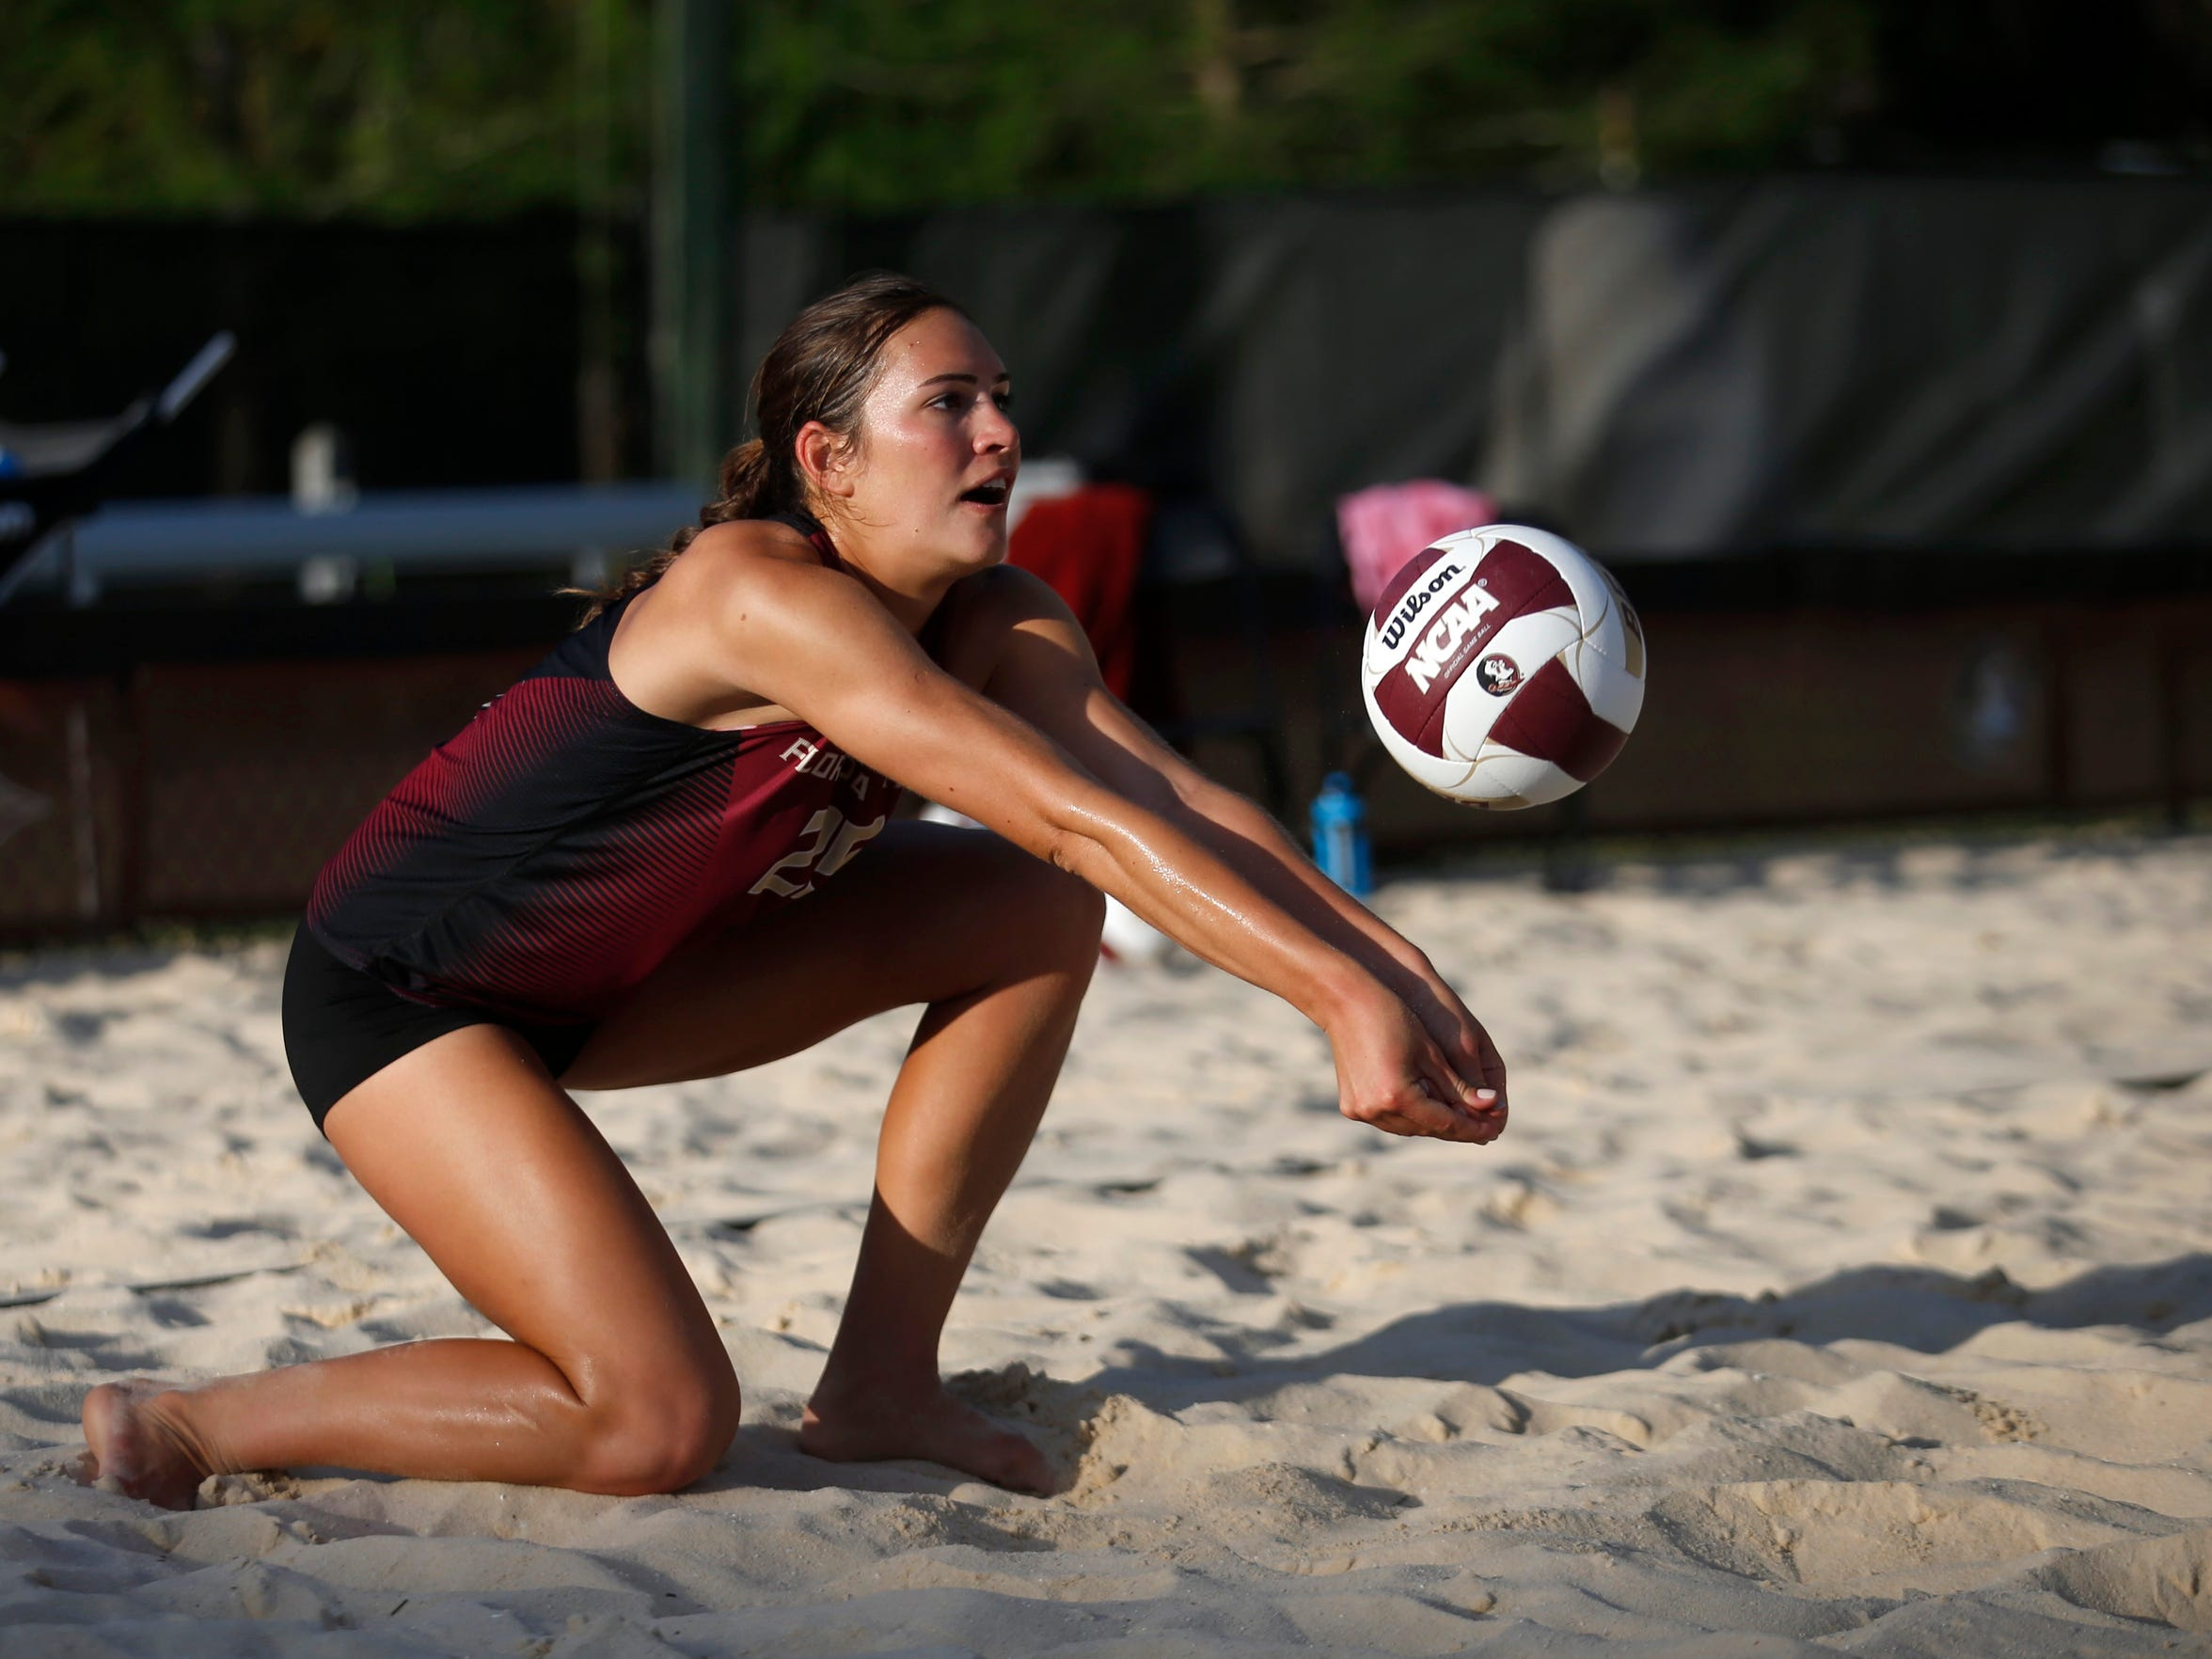 FSU's Victoria Paranagua bumps the ball during their match against the College of Charleston in the final round of the Seminoles' hosted beach volleyball invitational on Saturday, April 16, 2016.